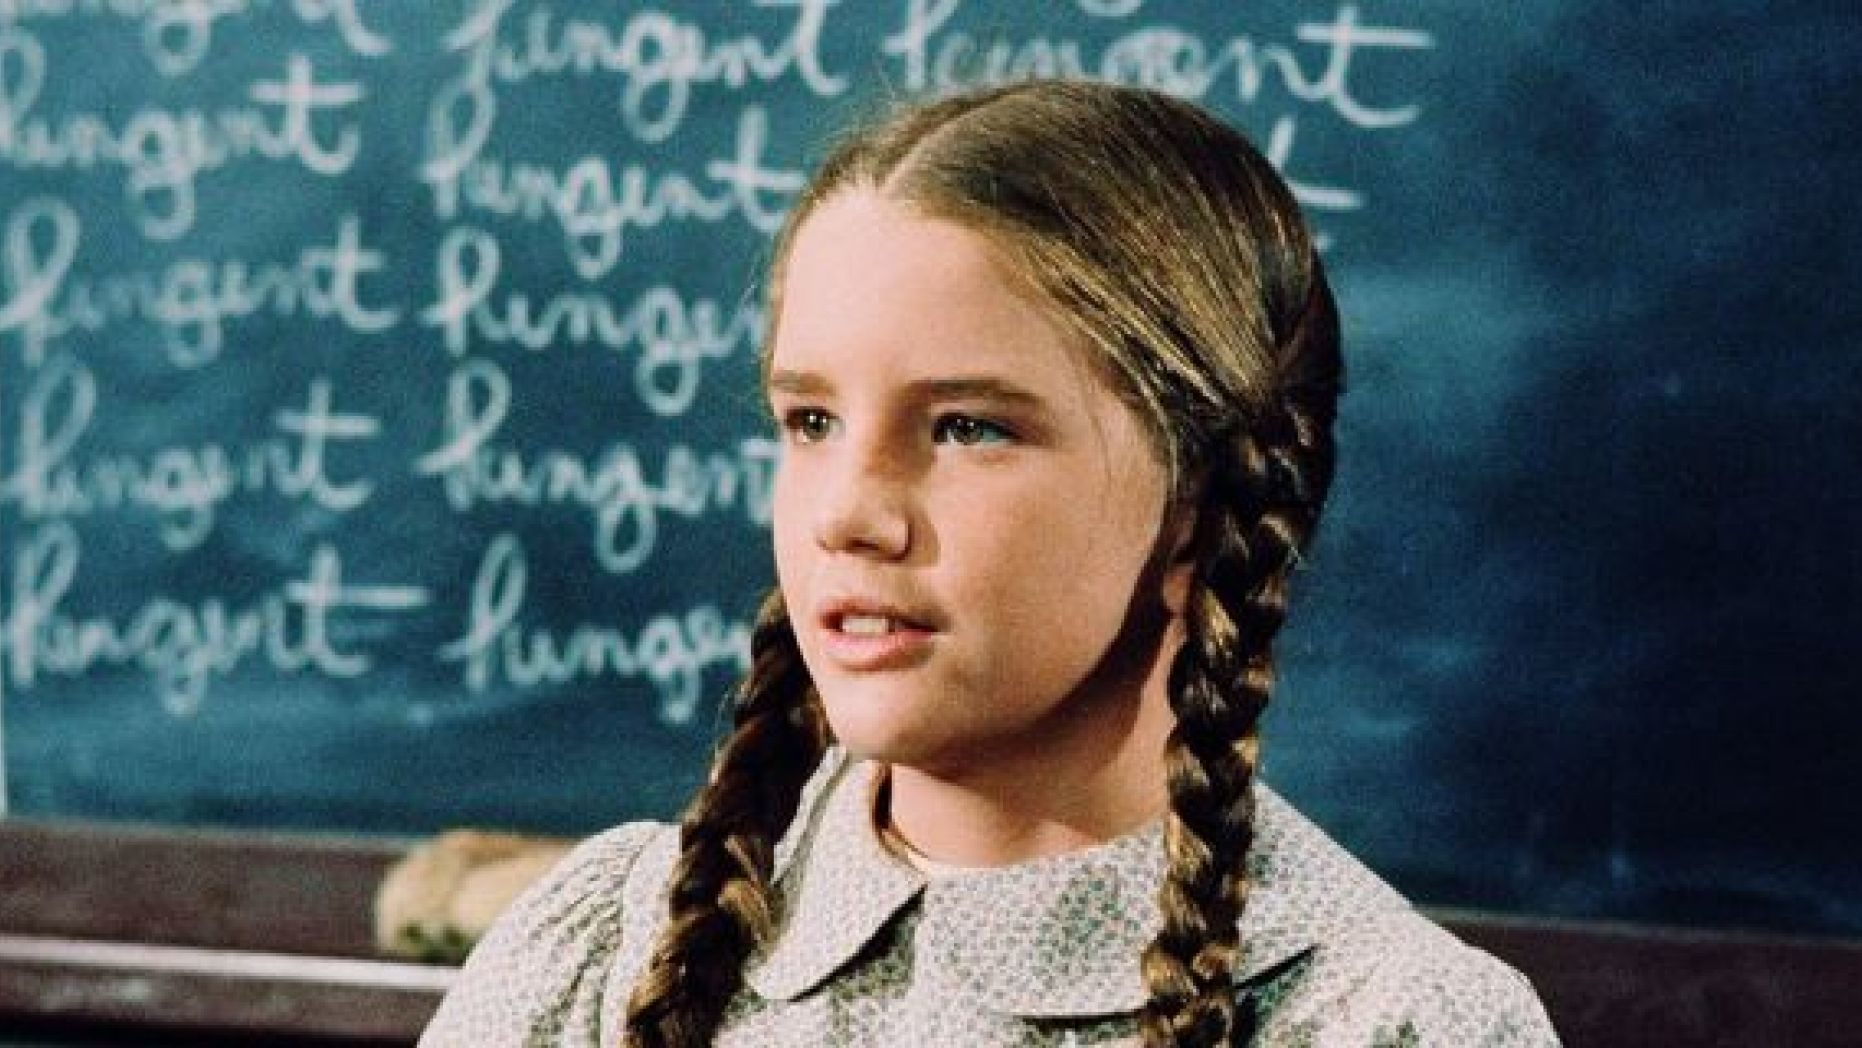 Melissa gilbert in the role of Laura Ingalls in Little House on the Prairie